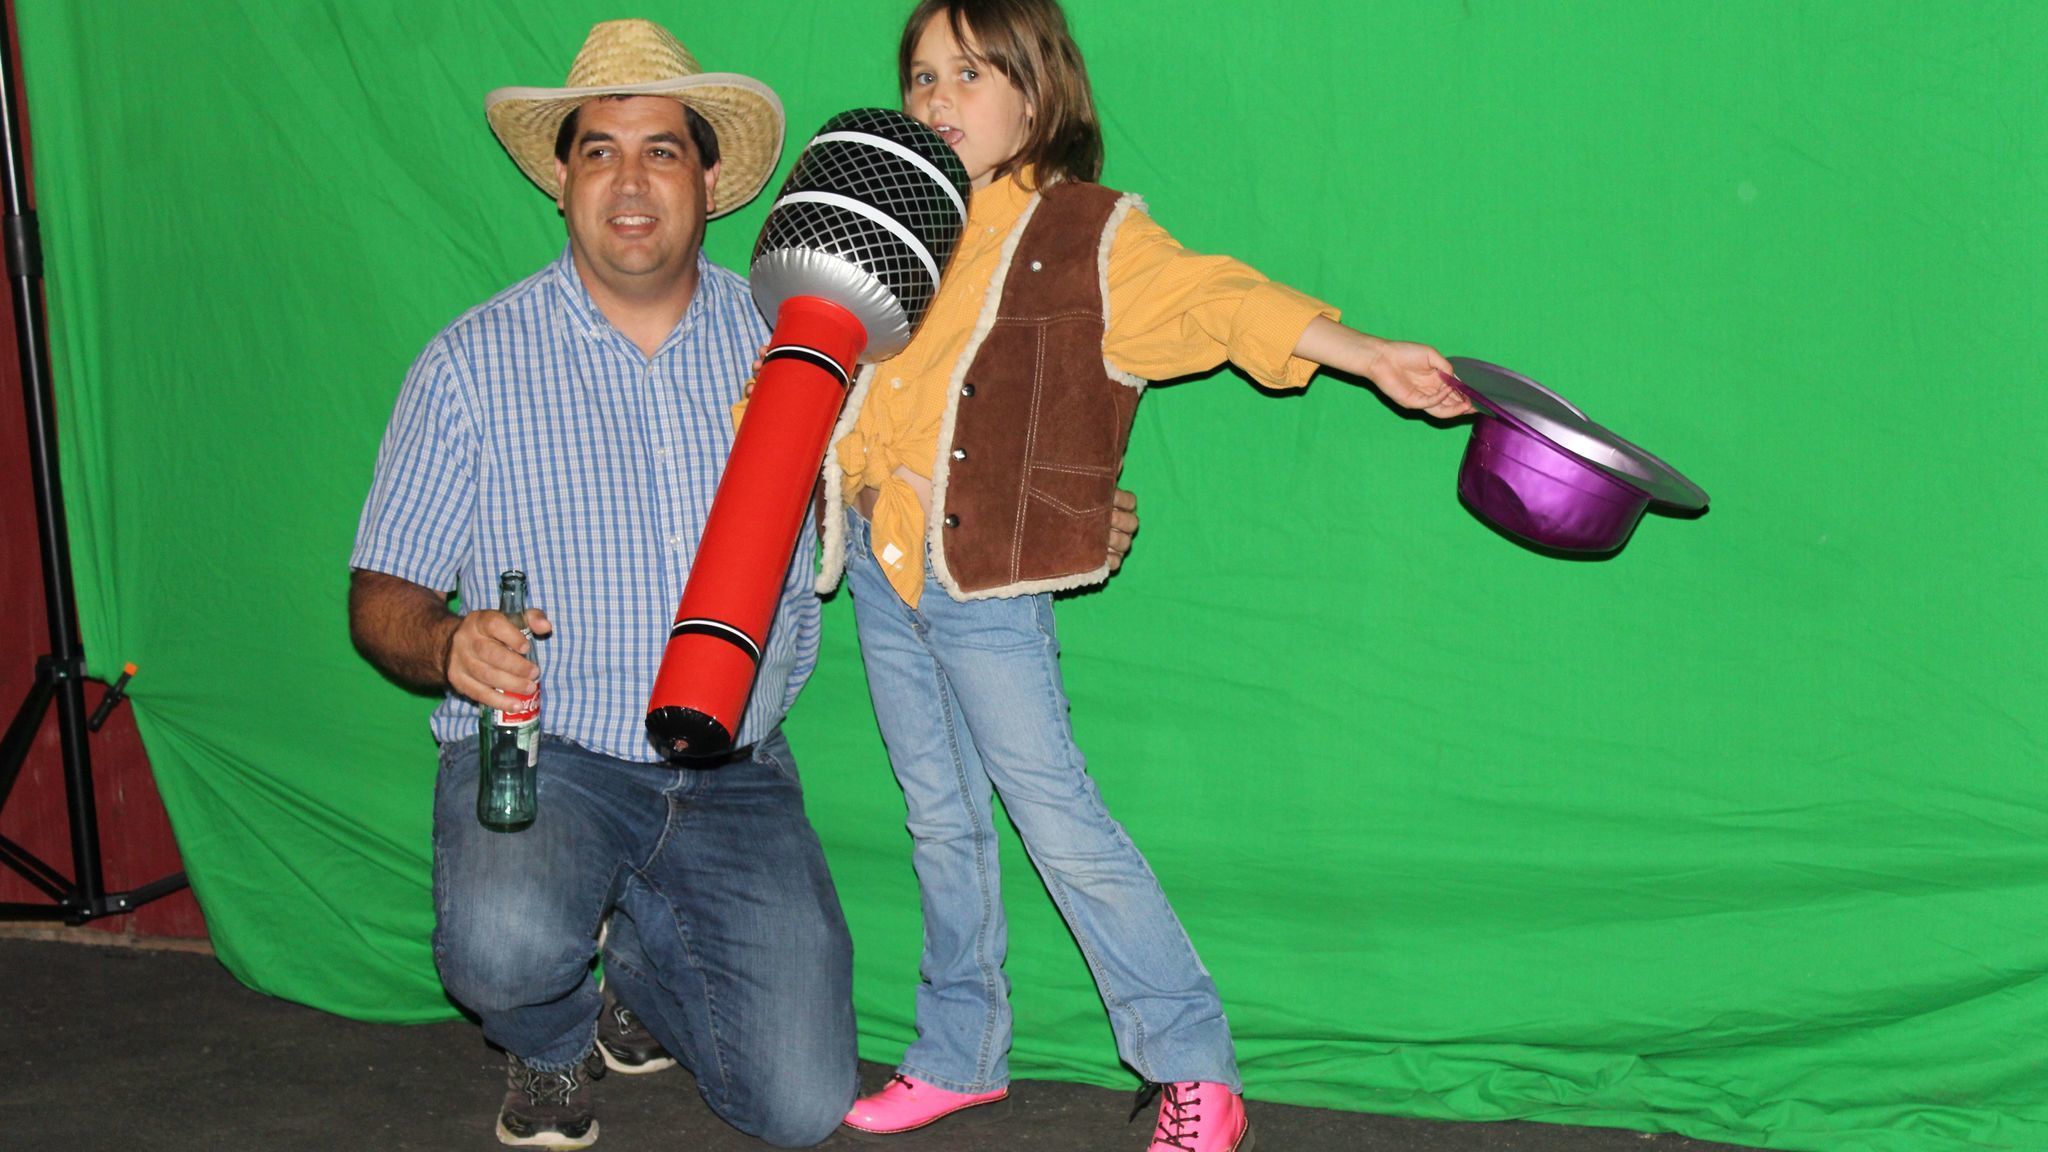 First-grader Jacey Morton poses for a father/daughter photo with her dad, Doug Morton, at the photo booth.